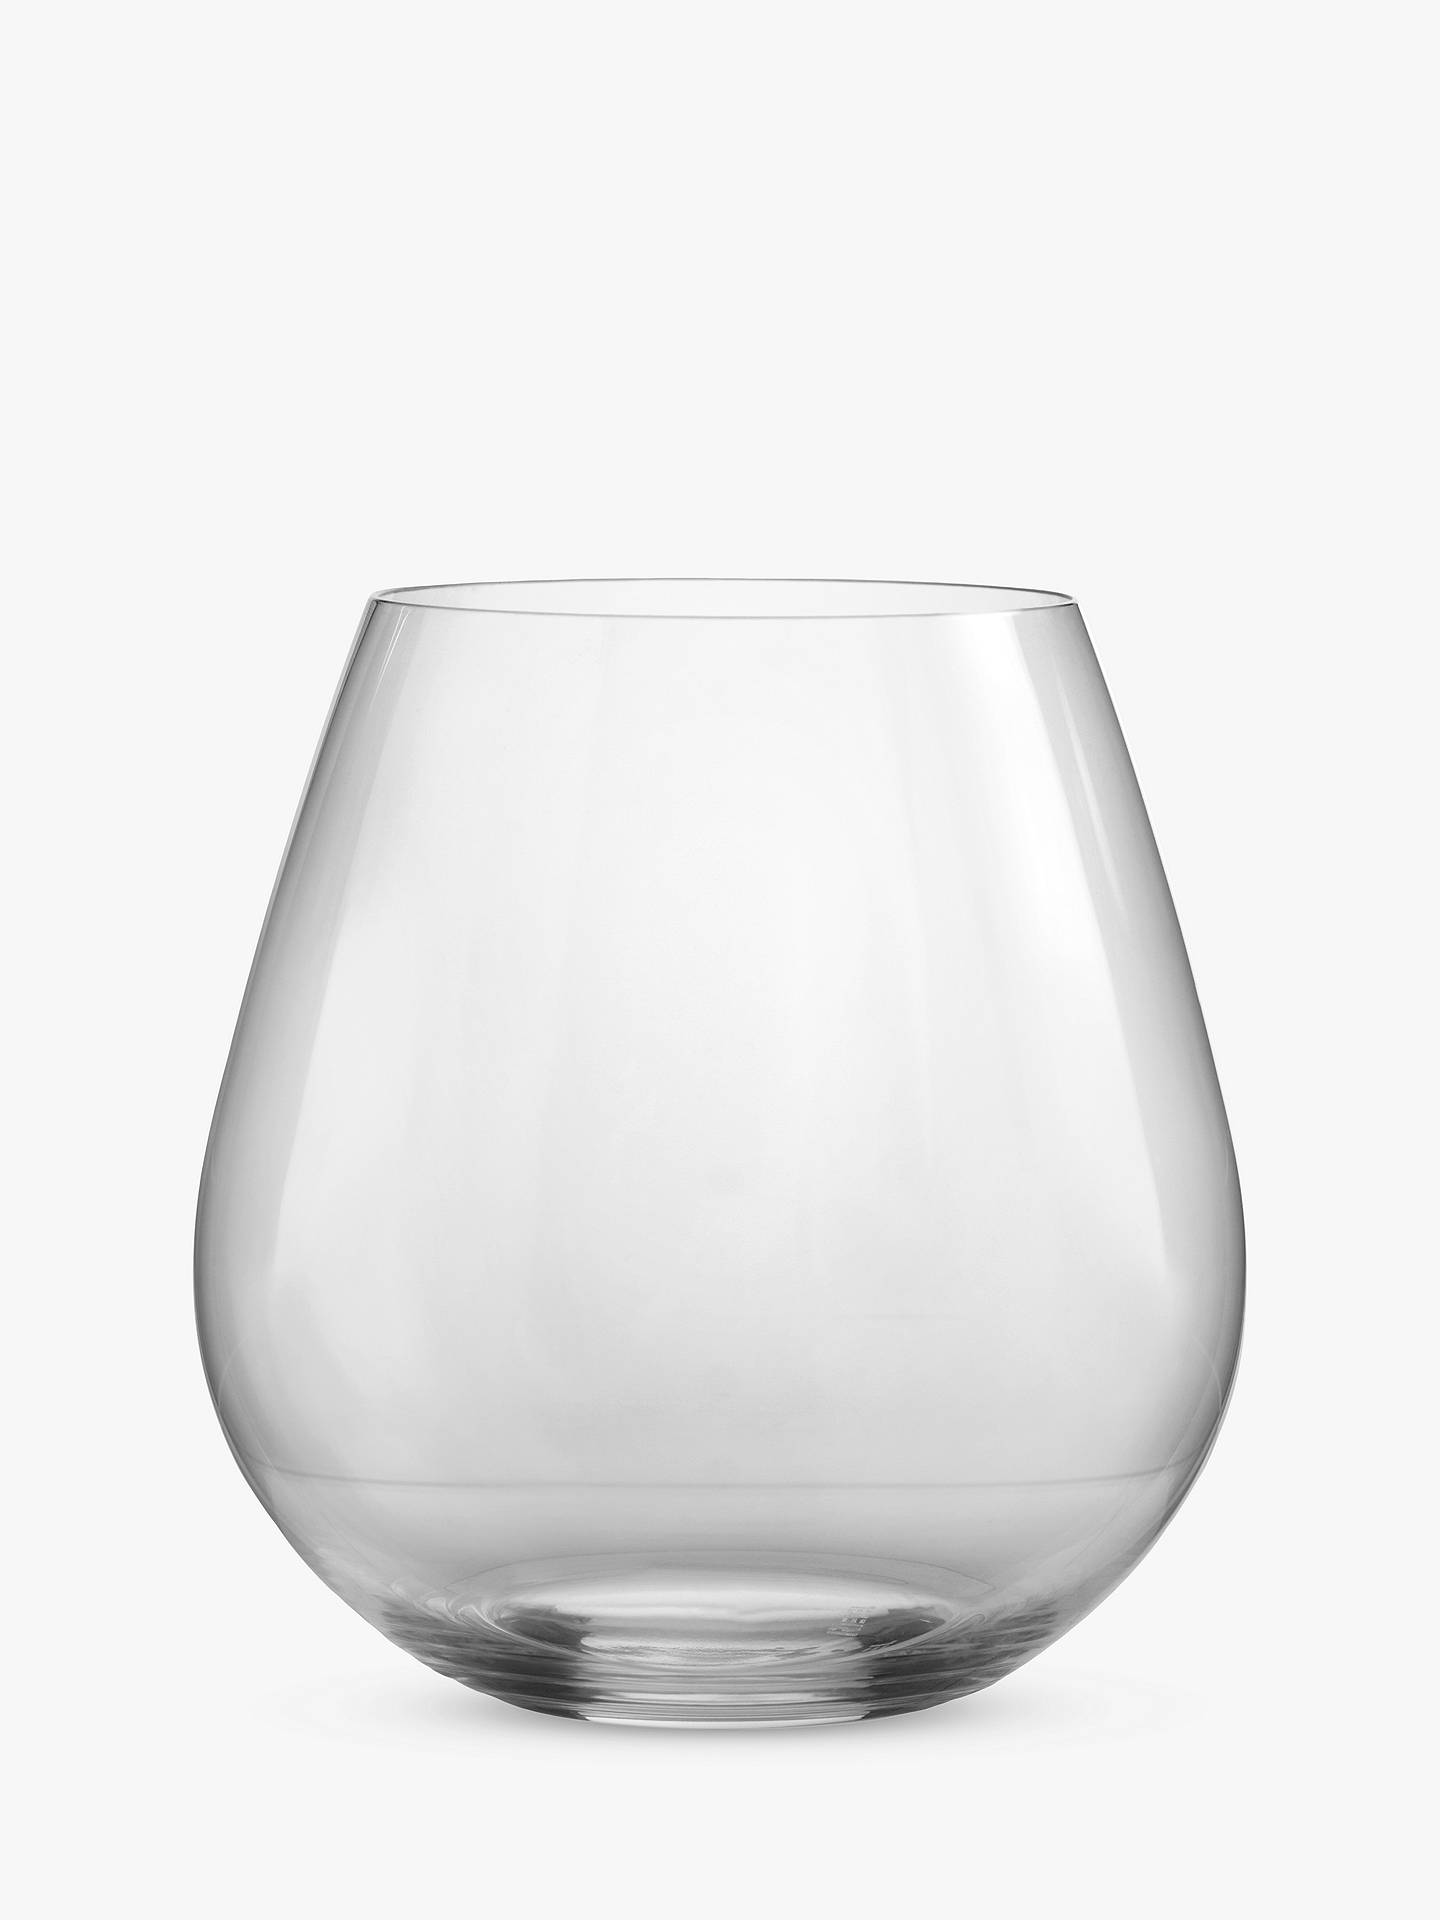 e95339ccfbf Riedel 'O' Stemless Pinot Noir / Nebbiolo Red Wine Glasses, Set of 2